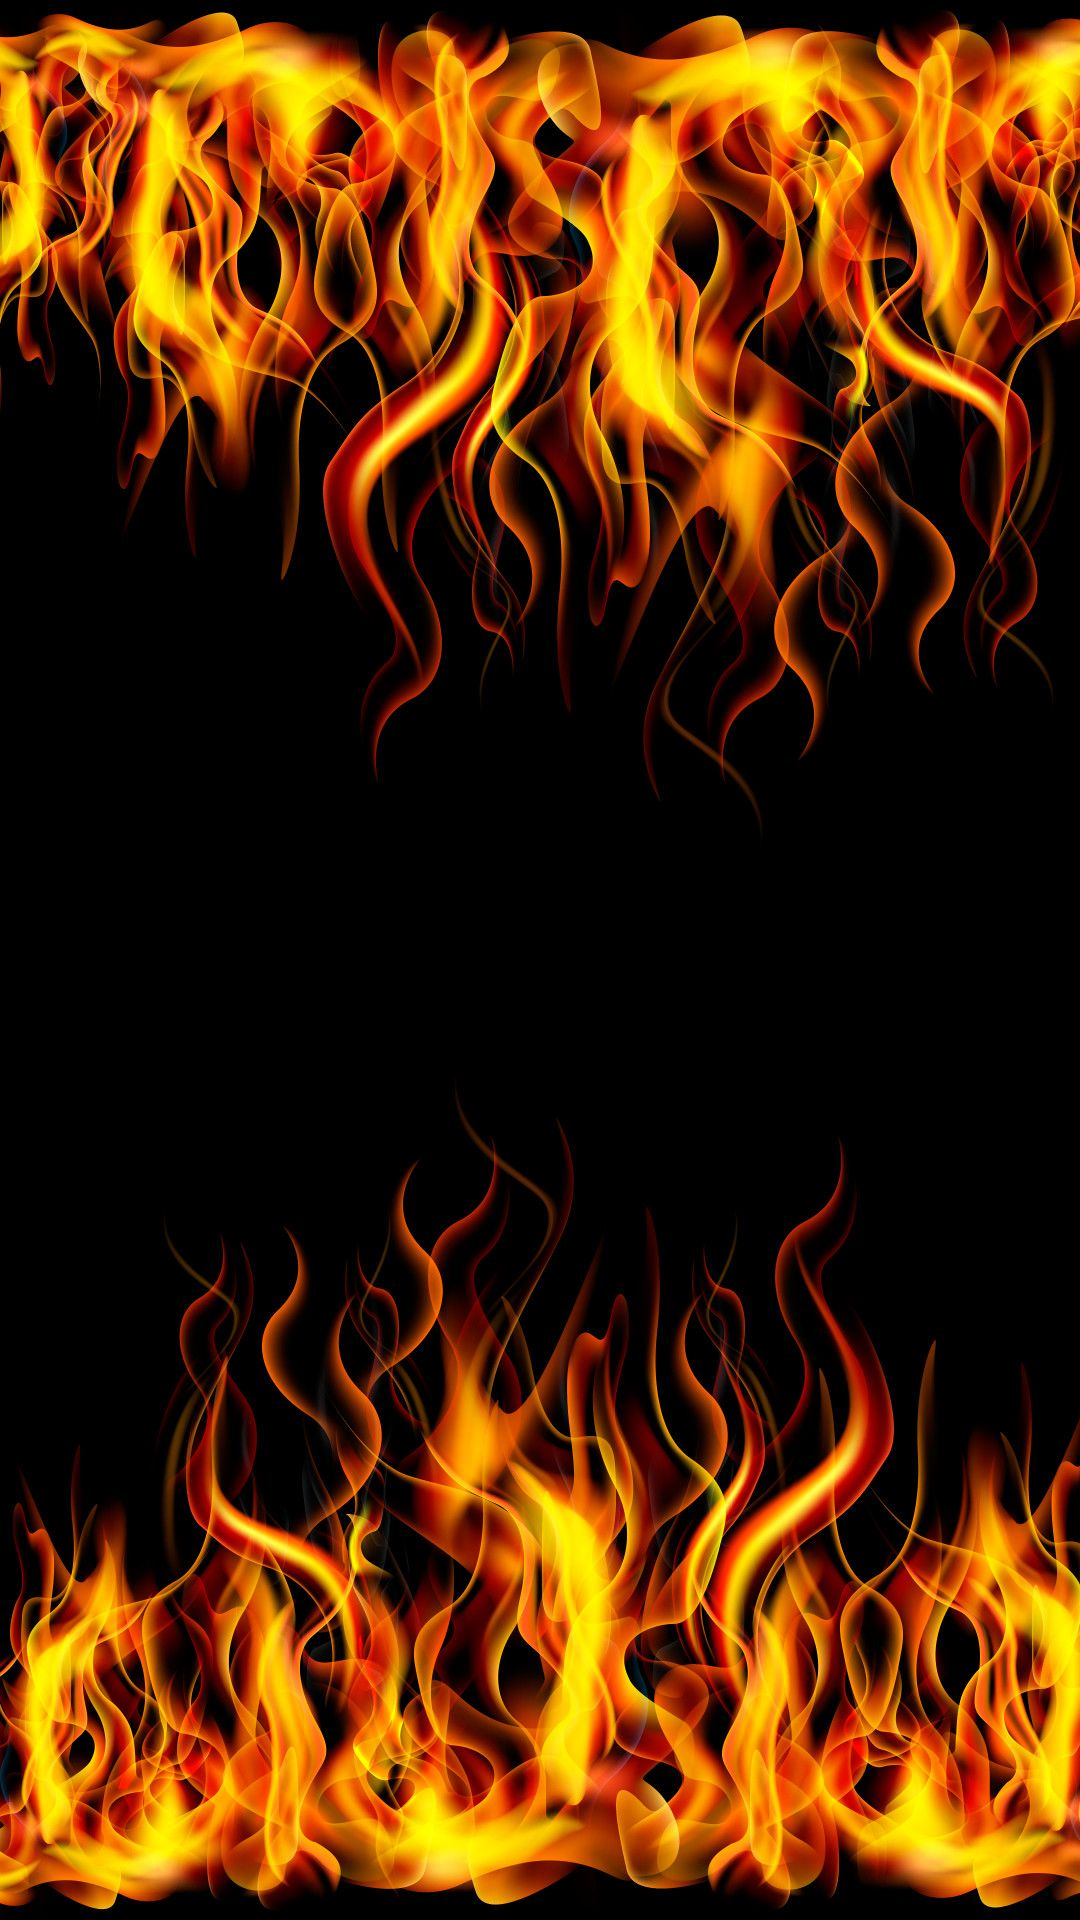 1080x1920 Wallpaper for Fire Tablet (82+ images)